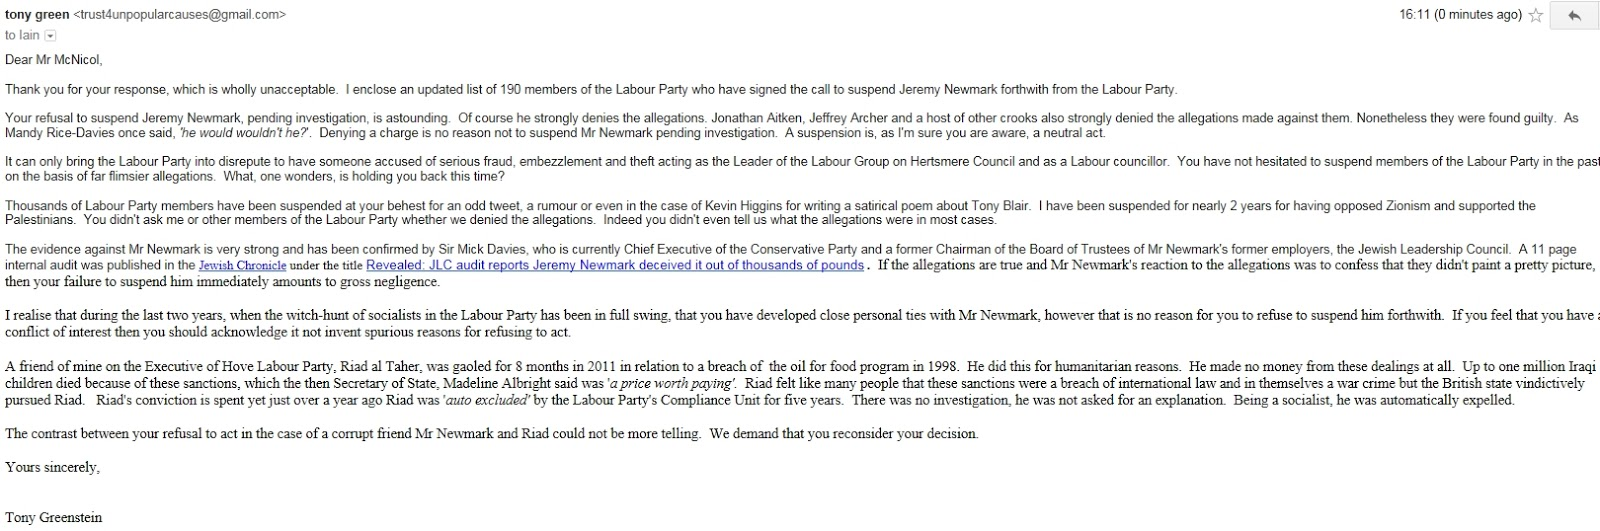 Tony Greenstein's Blog: BREAKING NEWS - Iain McNicol Refuses to